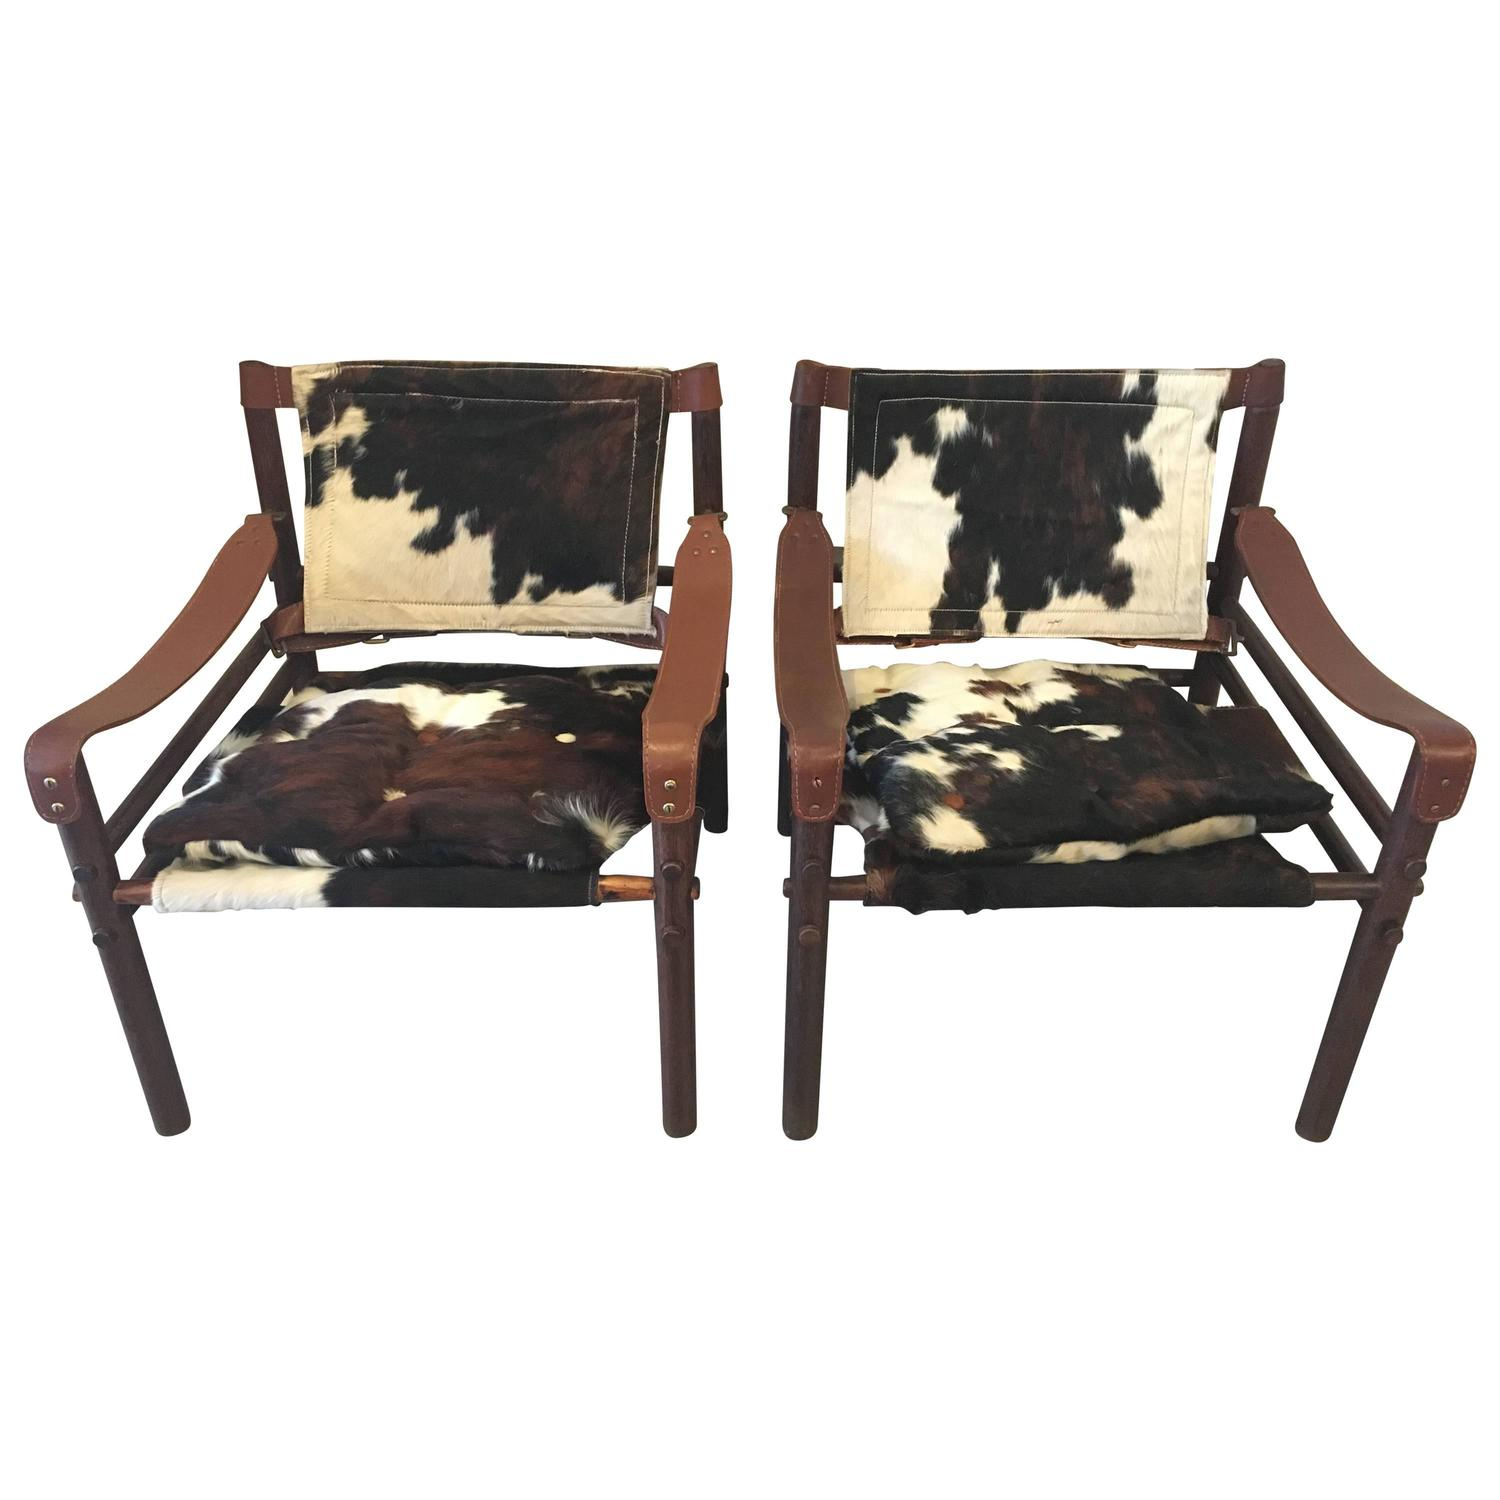 """Pair of Arne Norell """"Sirocco"""" Safari Chairs in Cowhide at 1stdibs"""